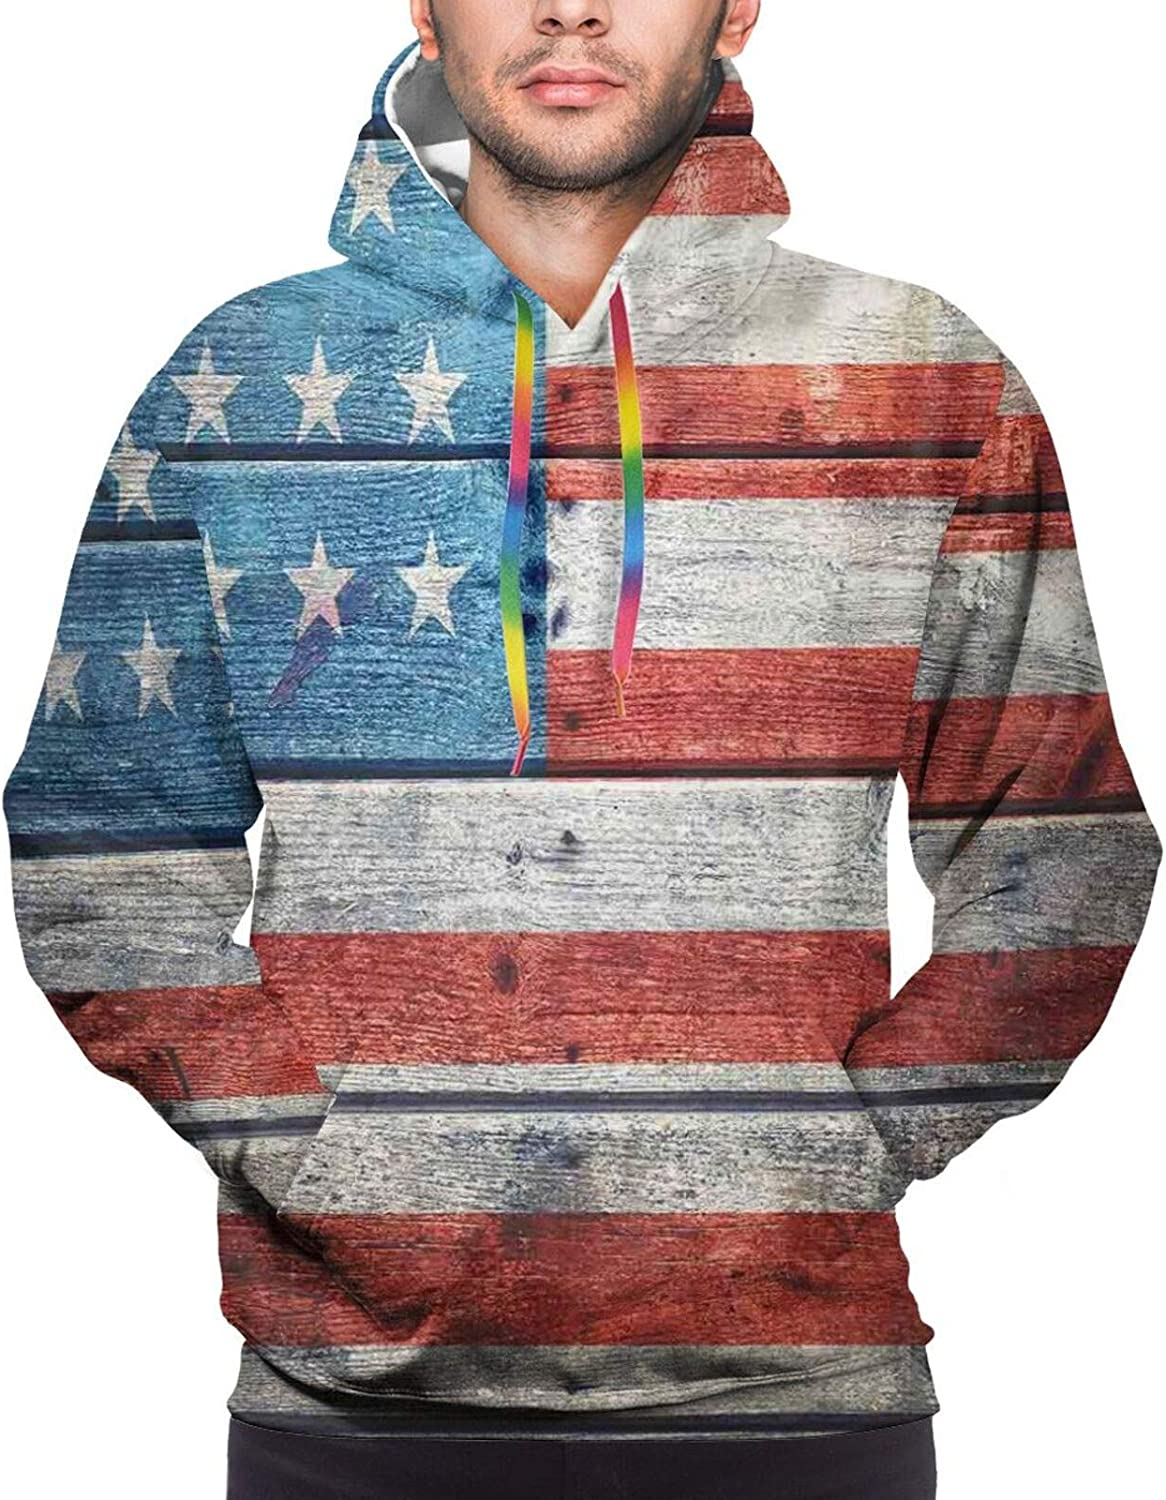 Men's Hoodies Sweatshirts,July Fourth Stars Citizen National Day Patriotic Western Salute to The Union